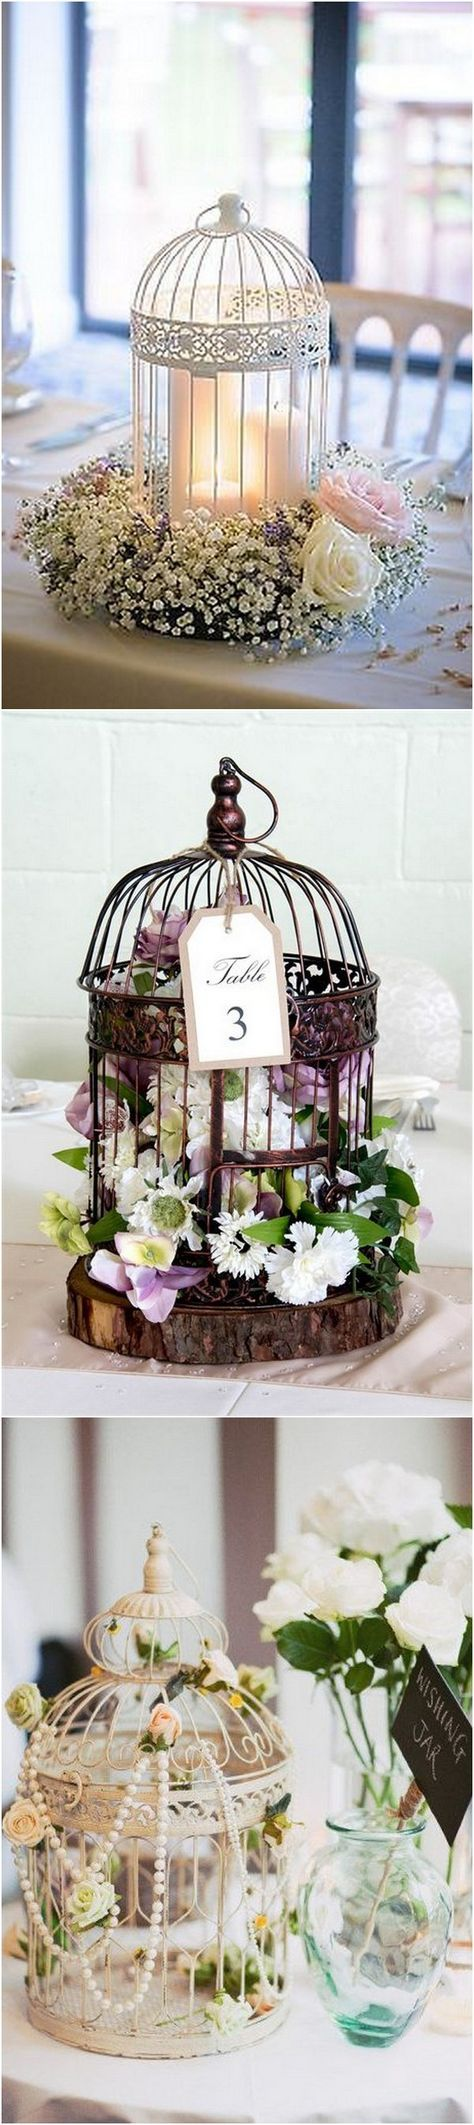 birdcage wedding decorations best 25 birdcage centerpiece wedding ideas on 1727